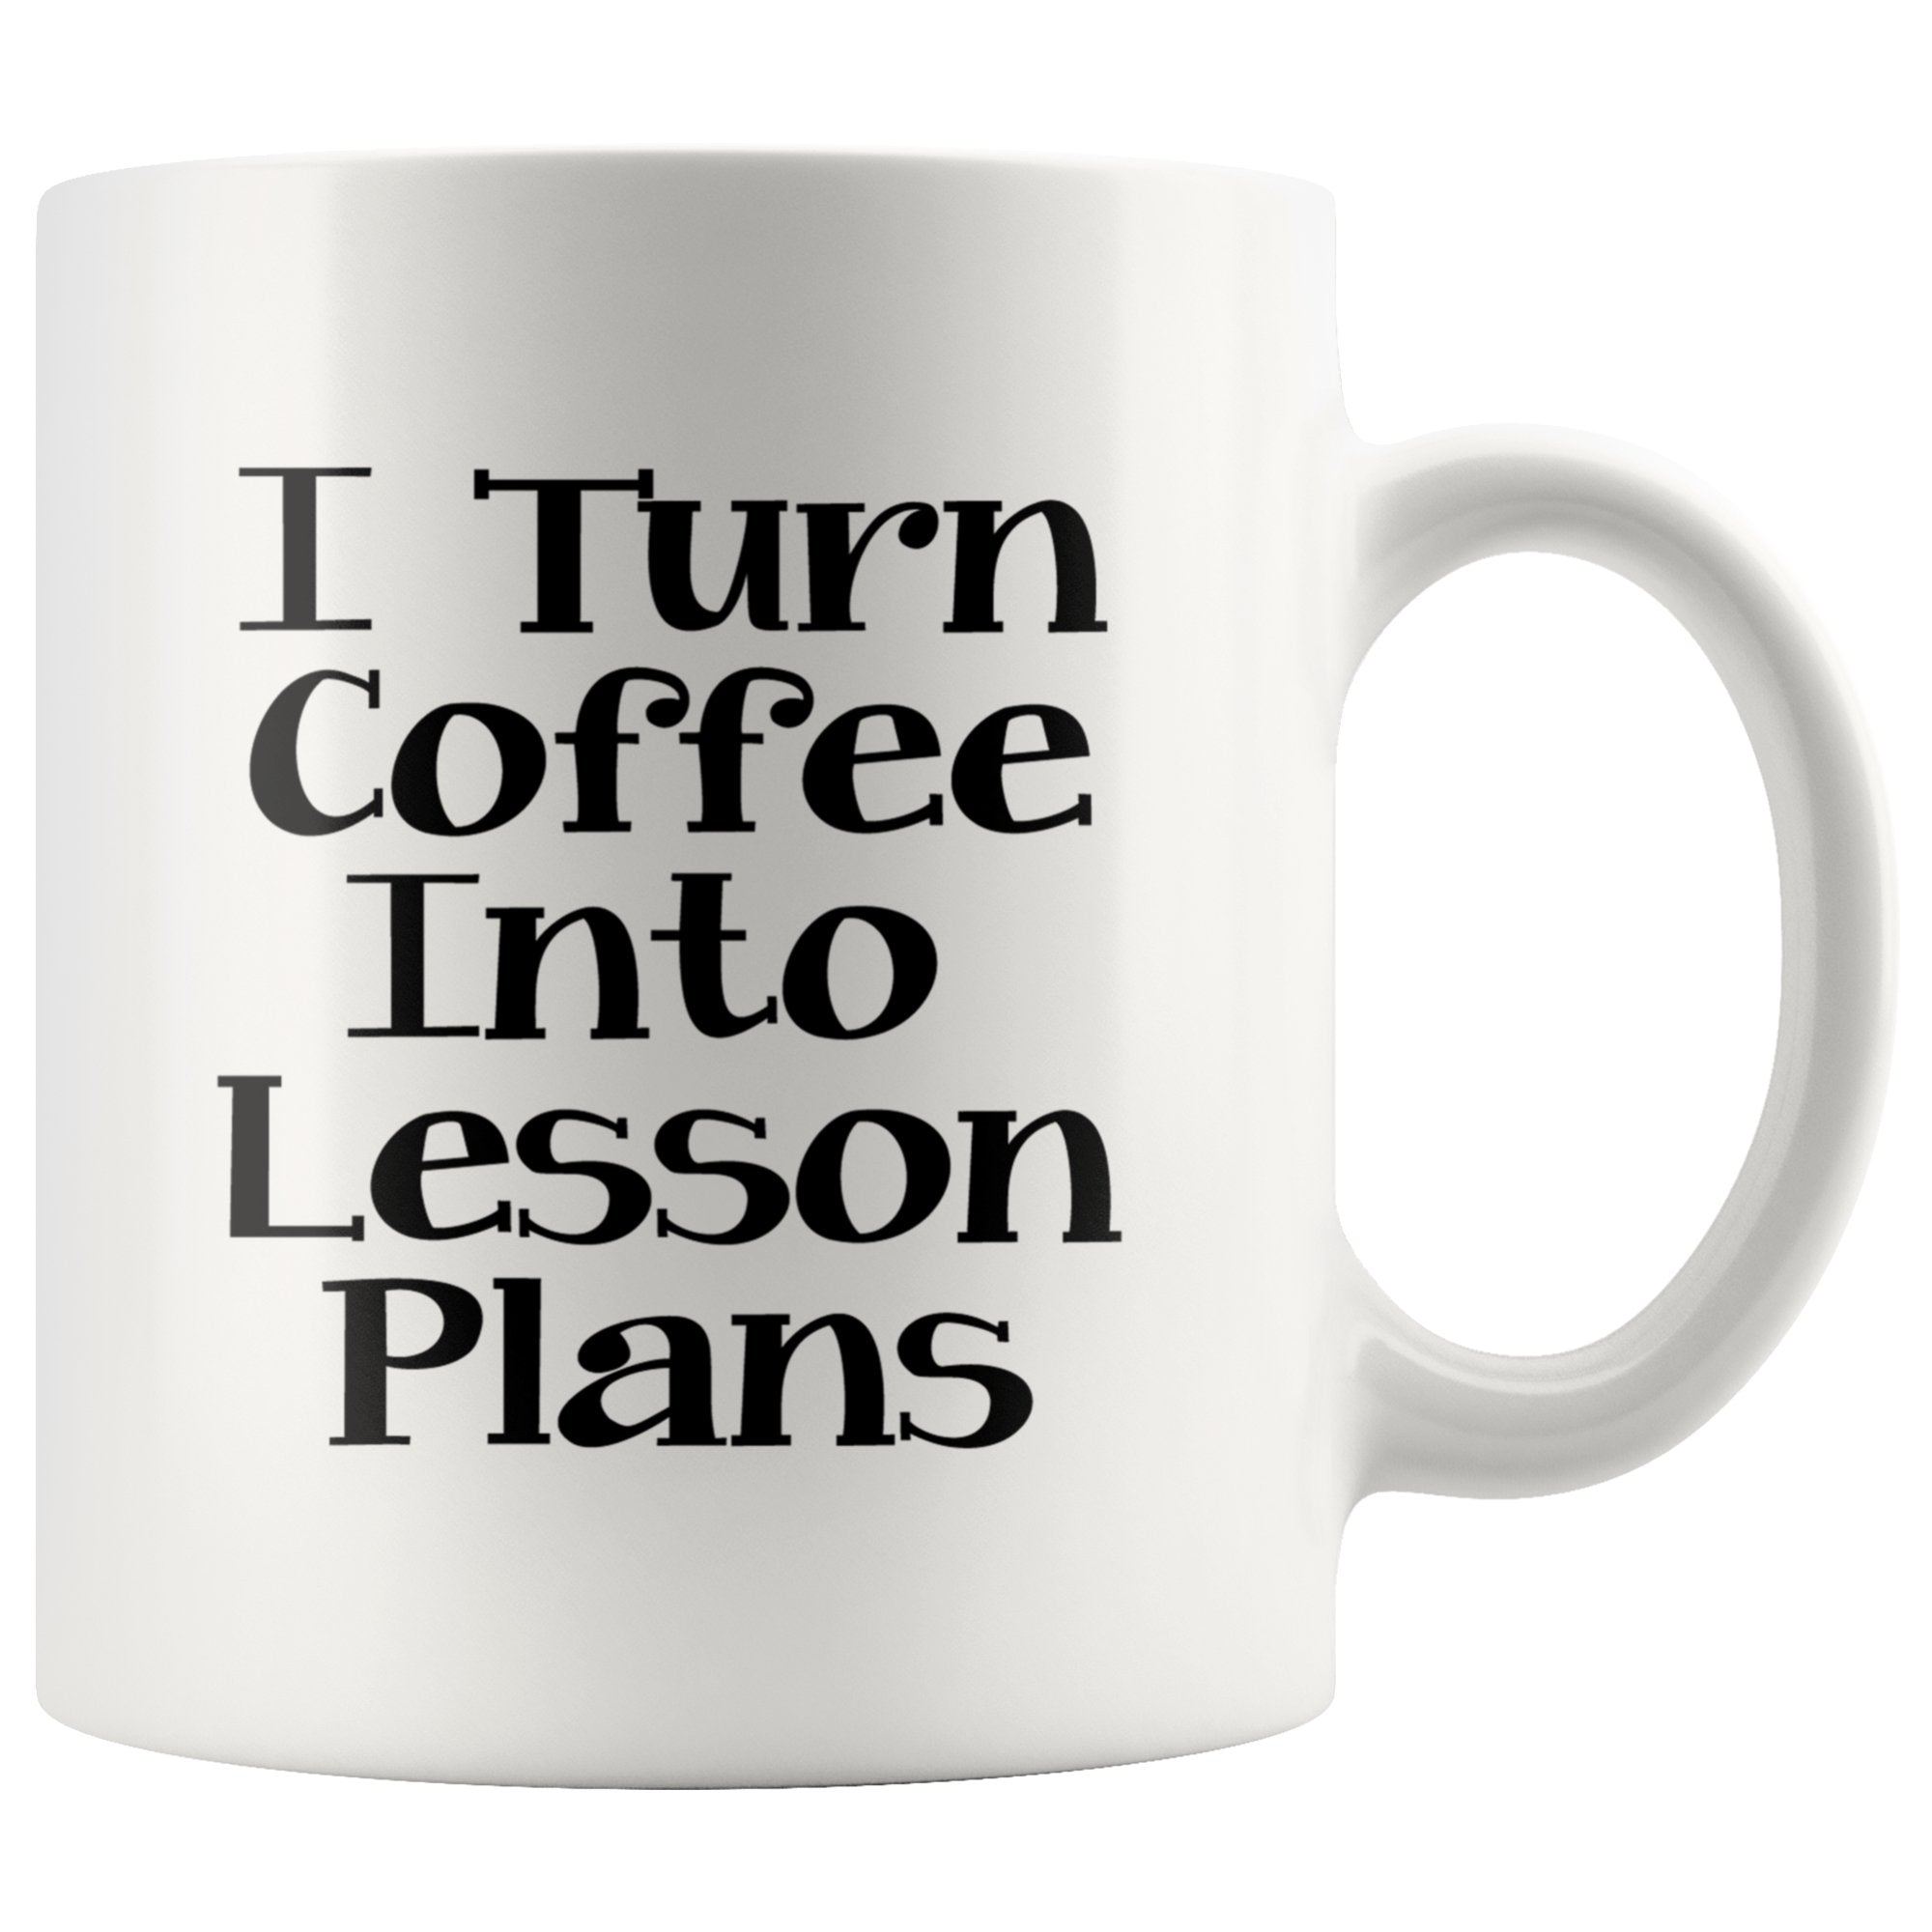 I Turn Coffee Into Lesson Plans White Mug - Snappy Creations